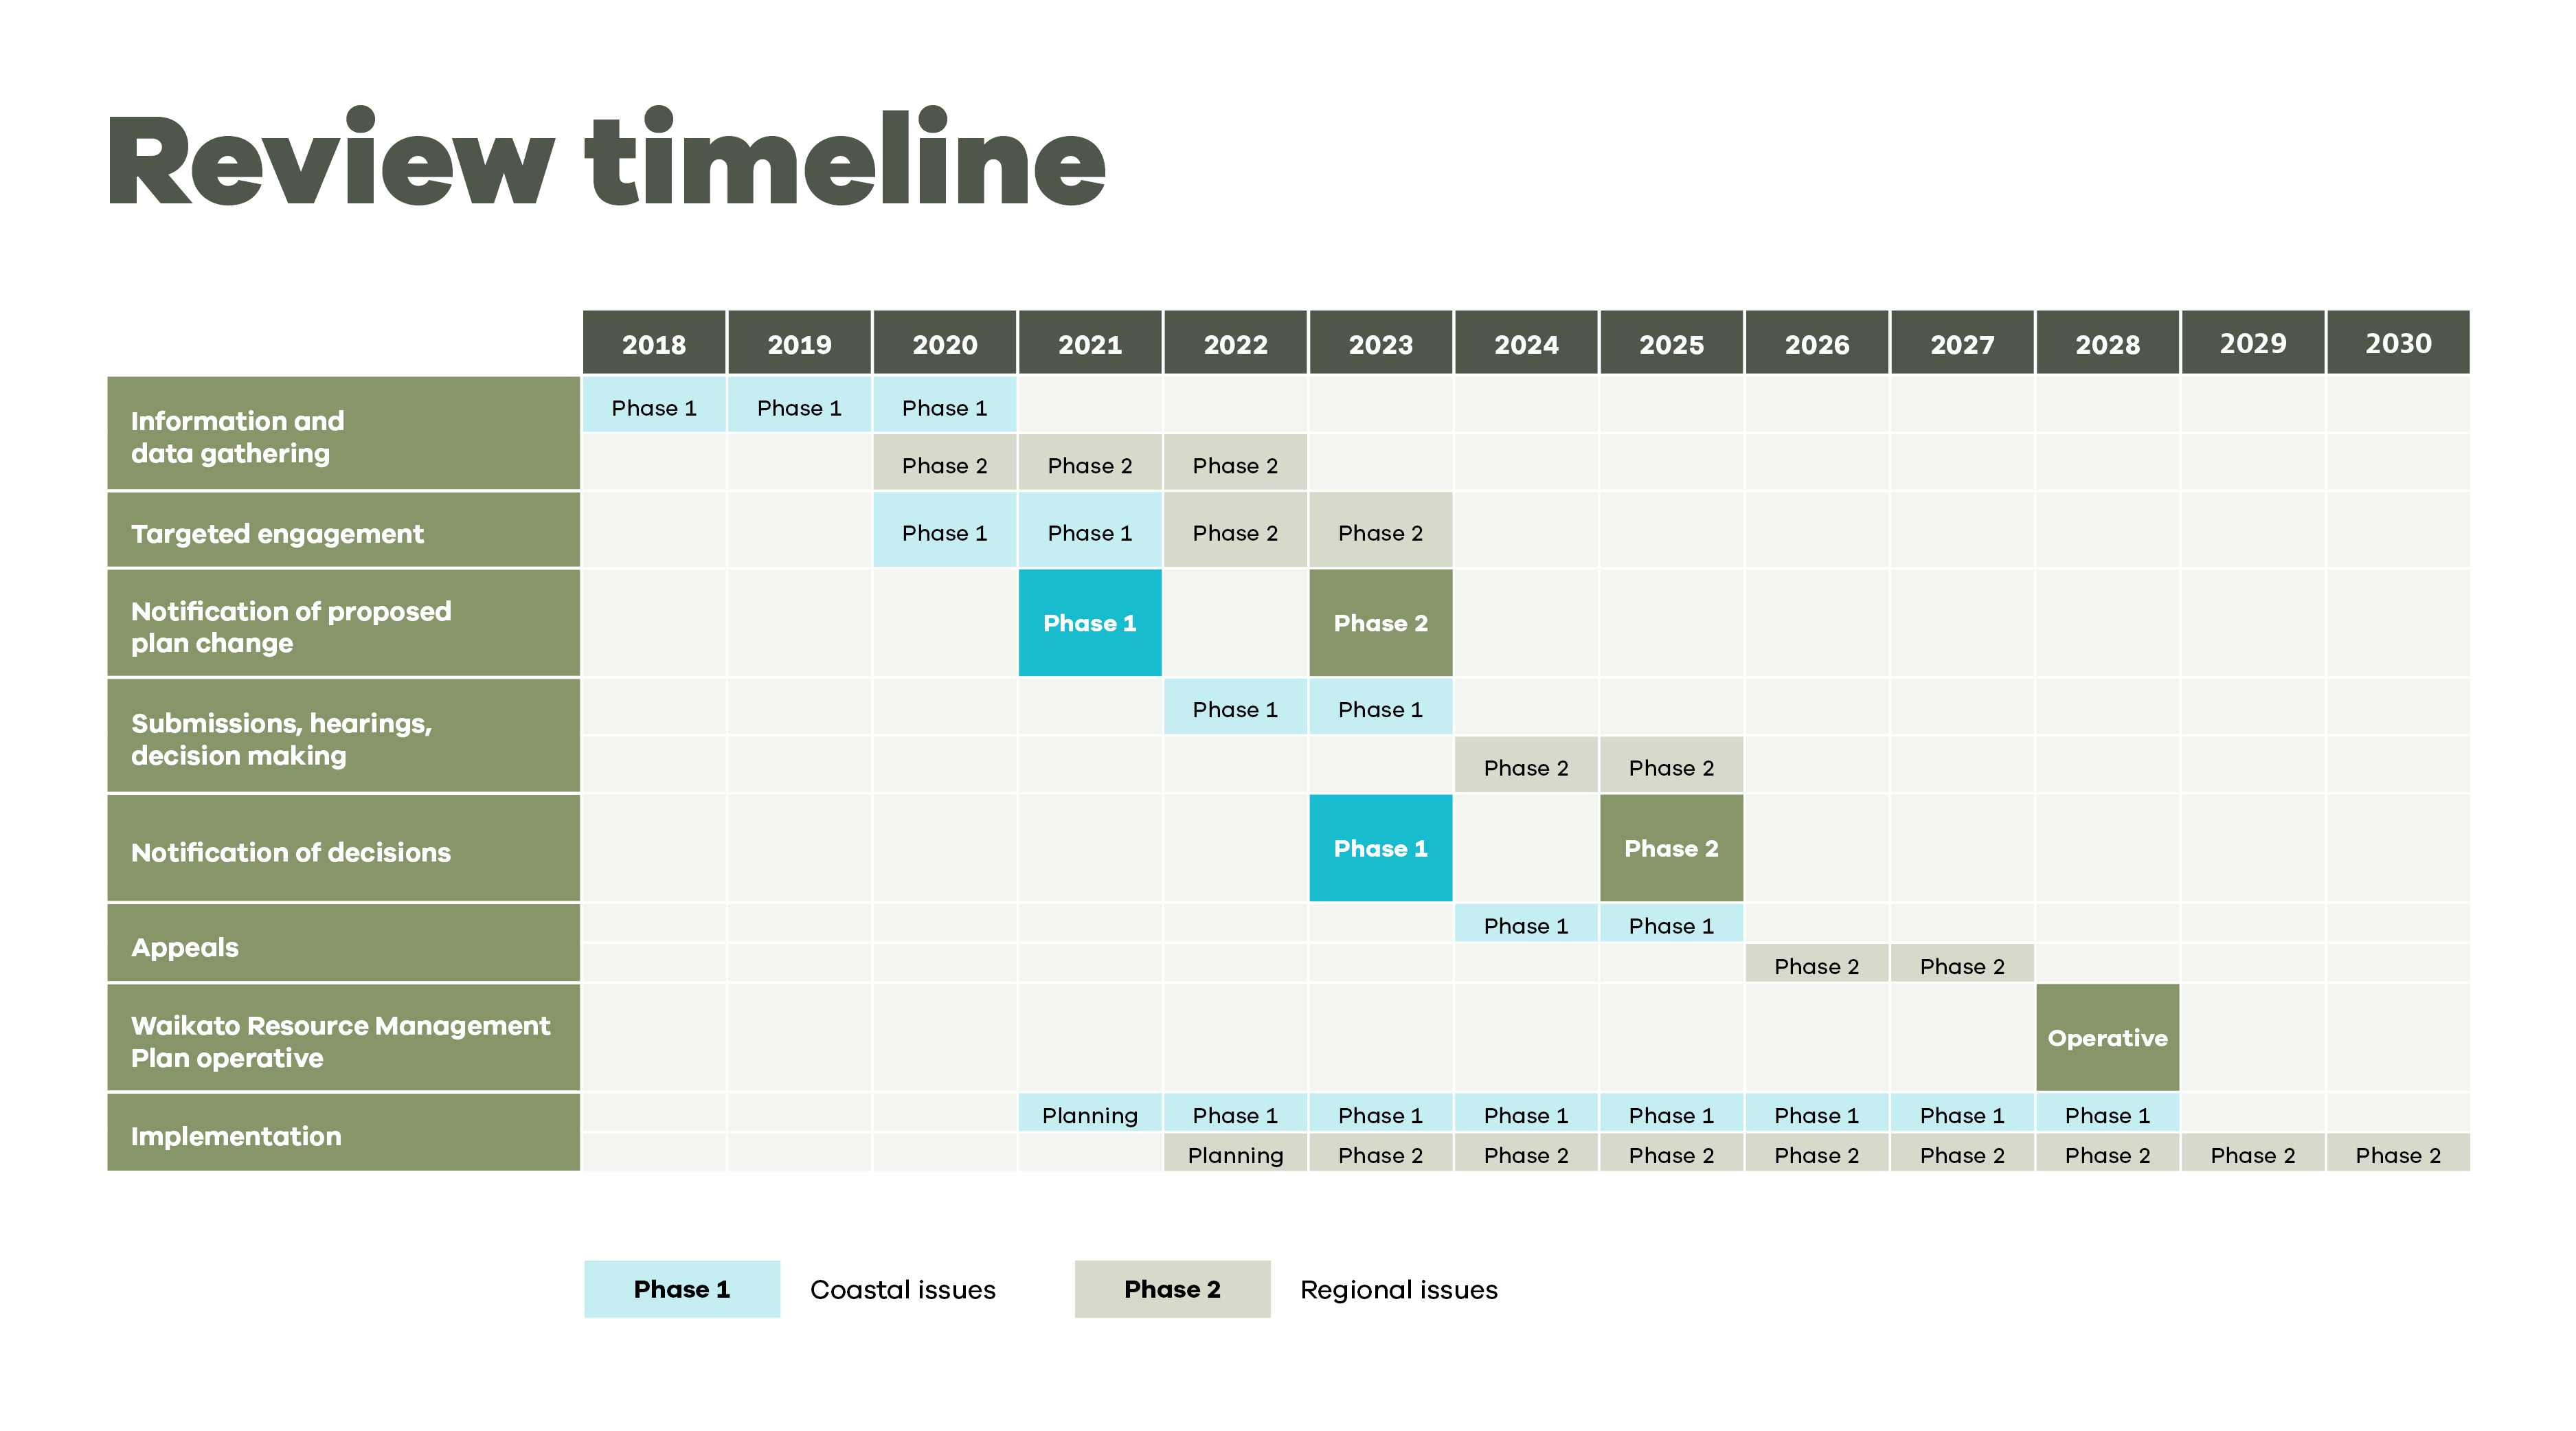 Healthy Environments timeline